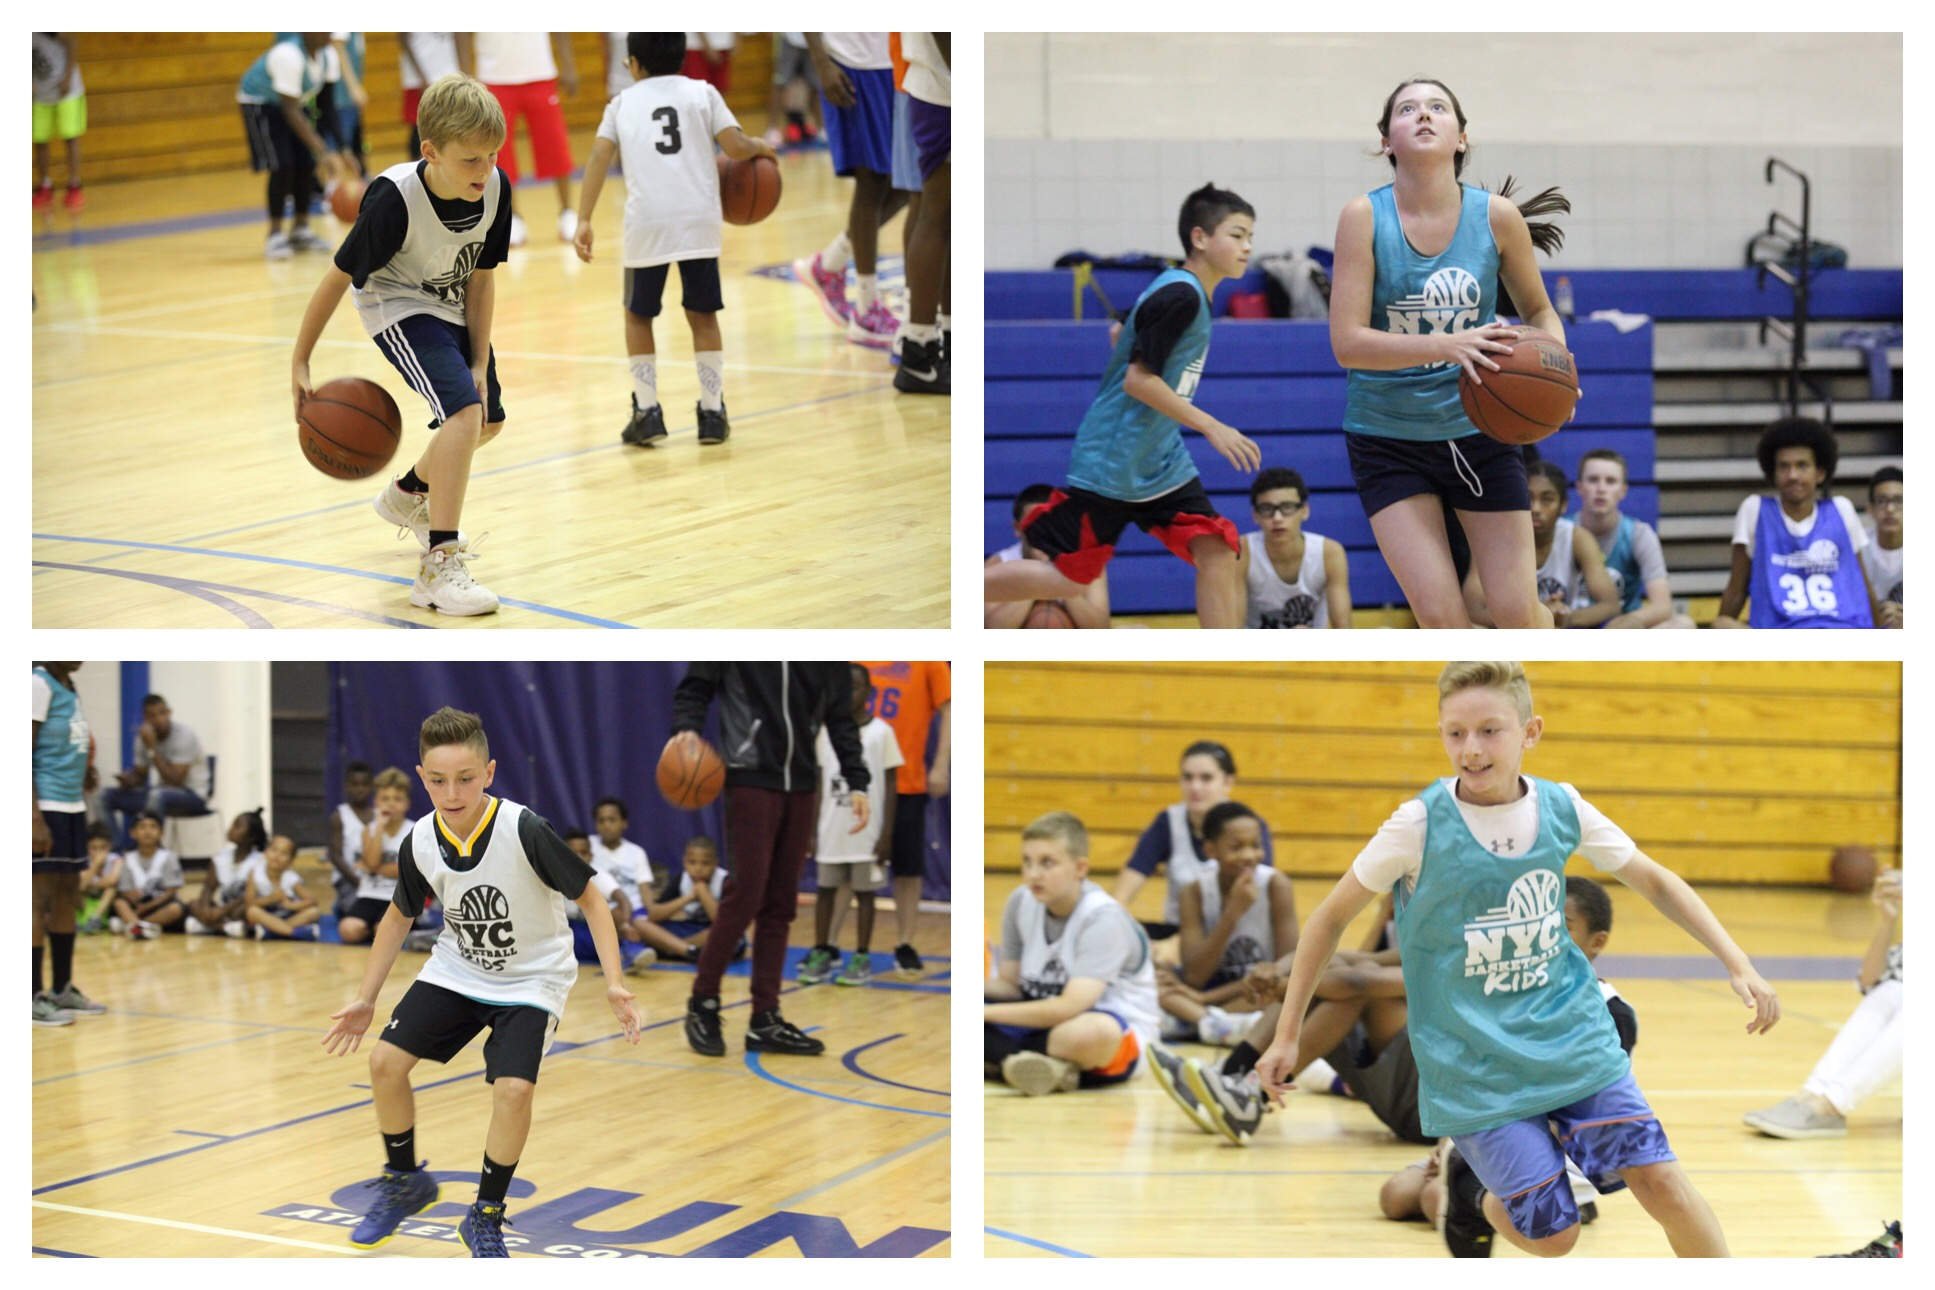 No Matter What Time Of Year It Is We Have Lessons Leagues And Teams That Will Work For Children All Ages Skill Levels